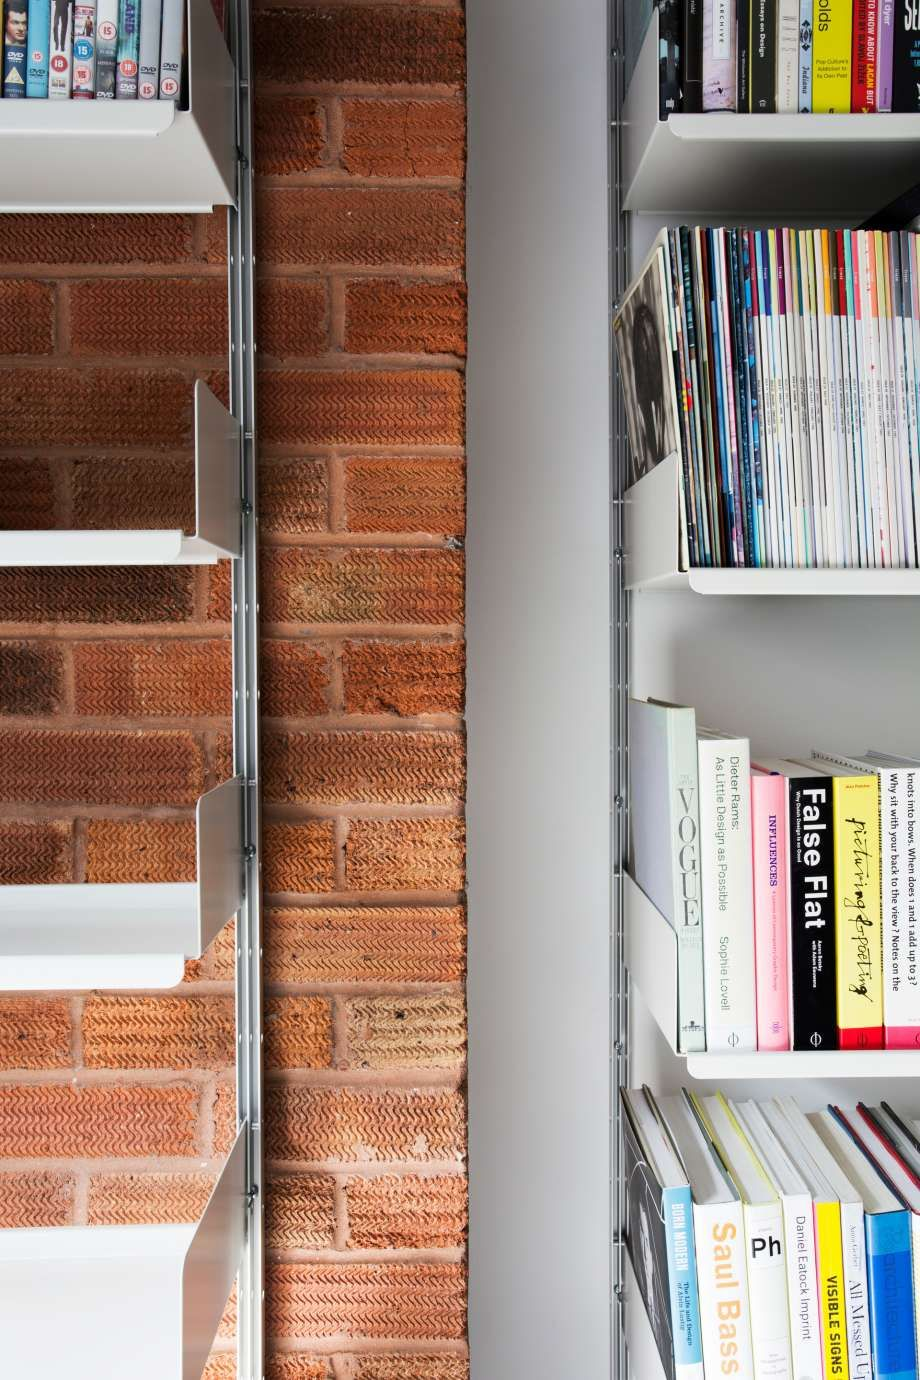 Fair Faced Brick Or Finished Plaster The Wall Mounted System Is Attached With